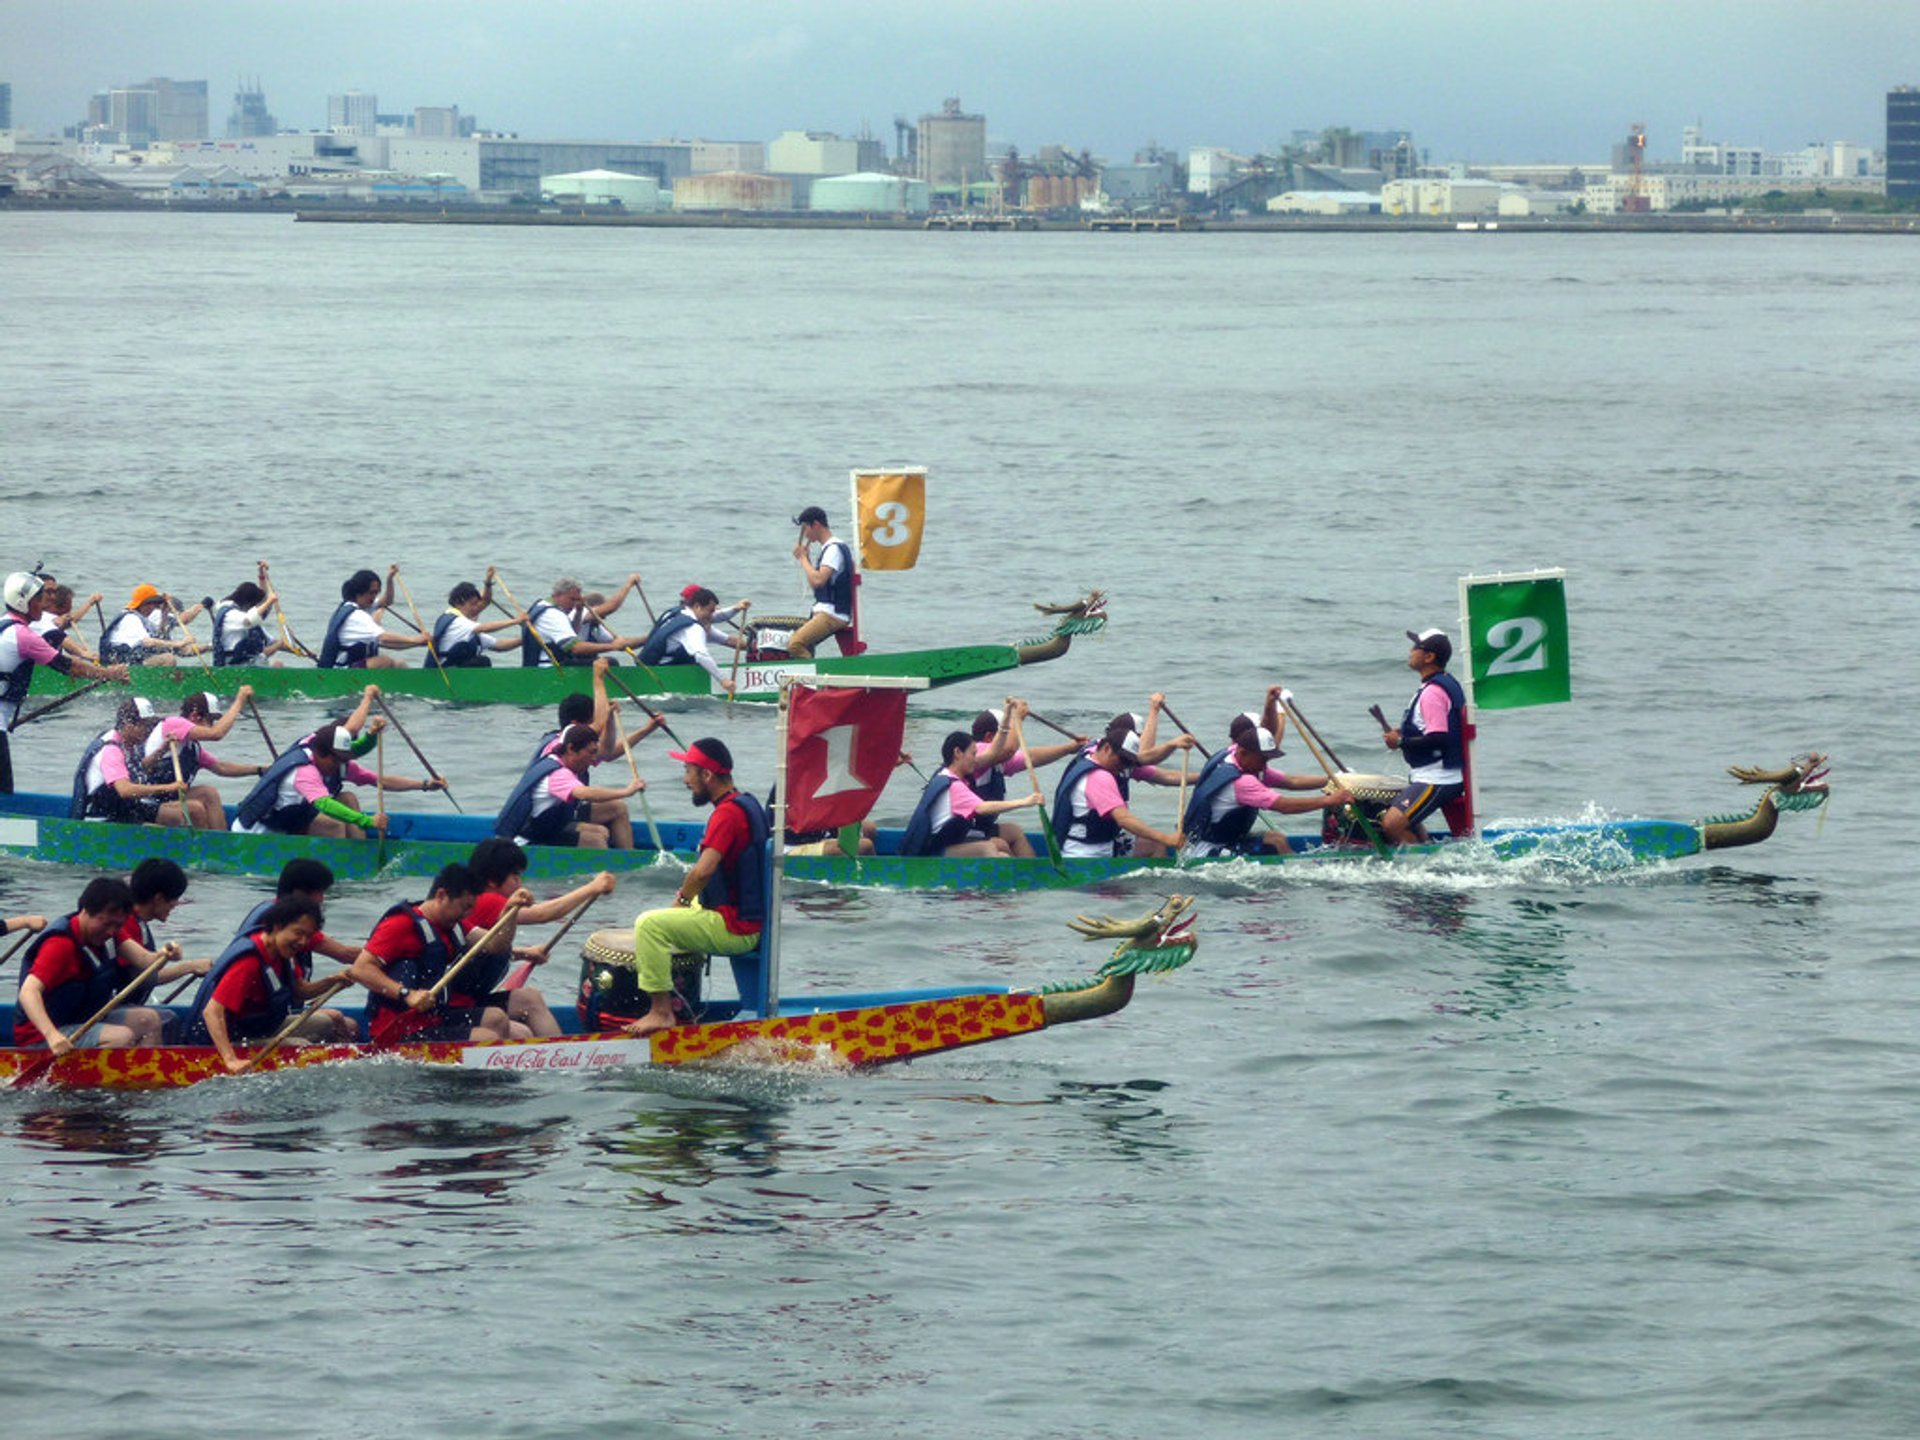 Dragon Boat Racing in Japan 2019 - Best Time